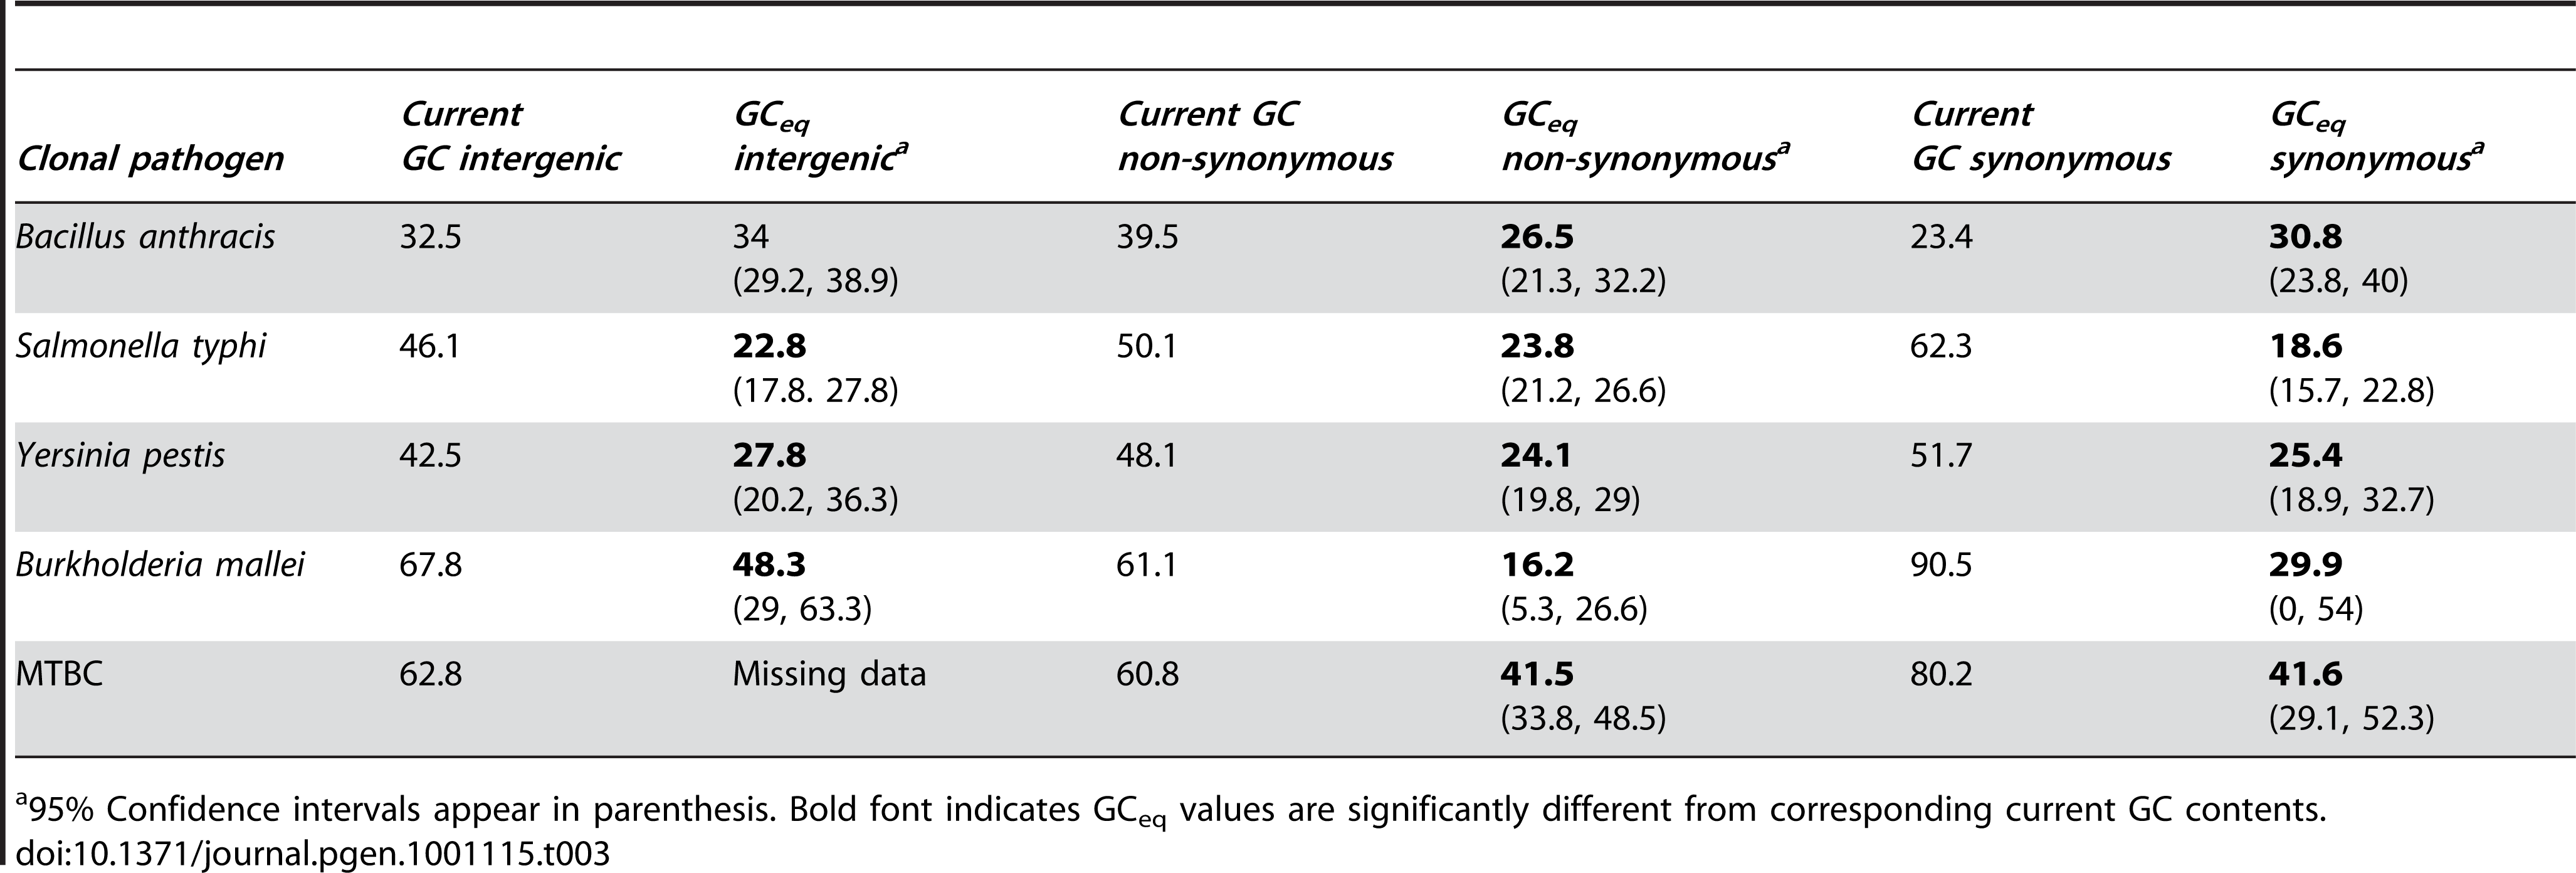 Comparisons of current GC content and GC<sub>eq</sub> for five clonal pathogen lineages.